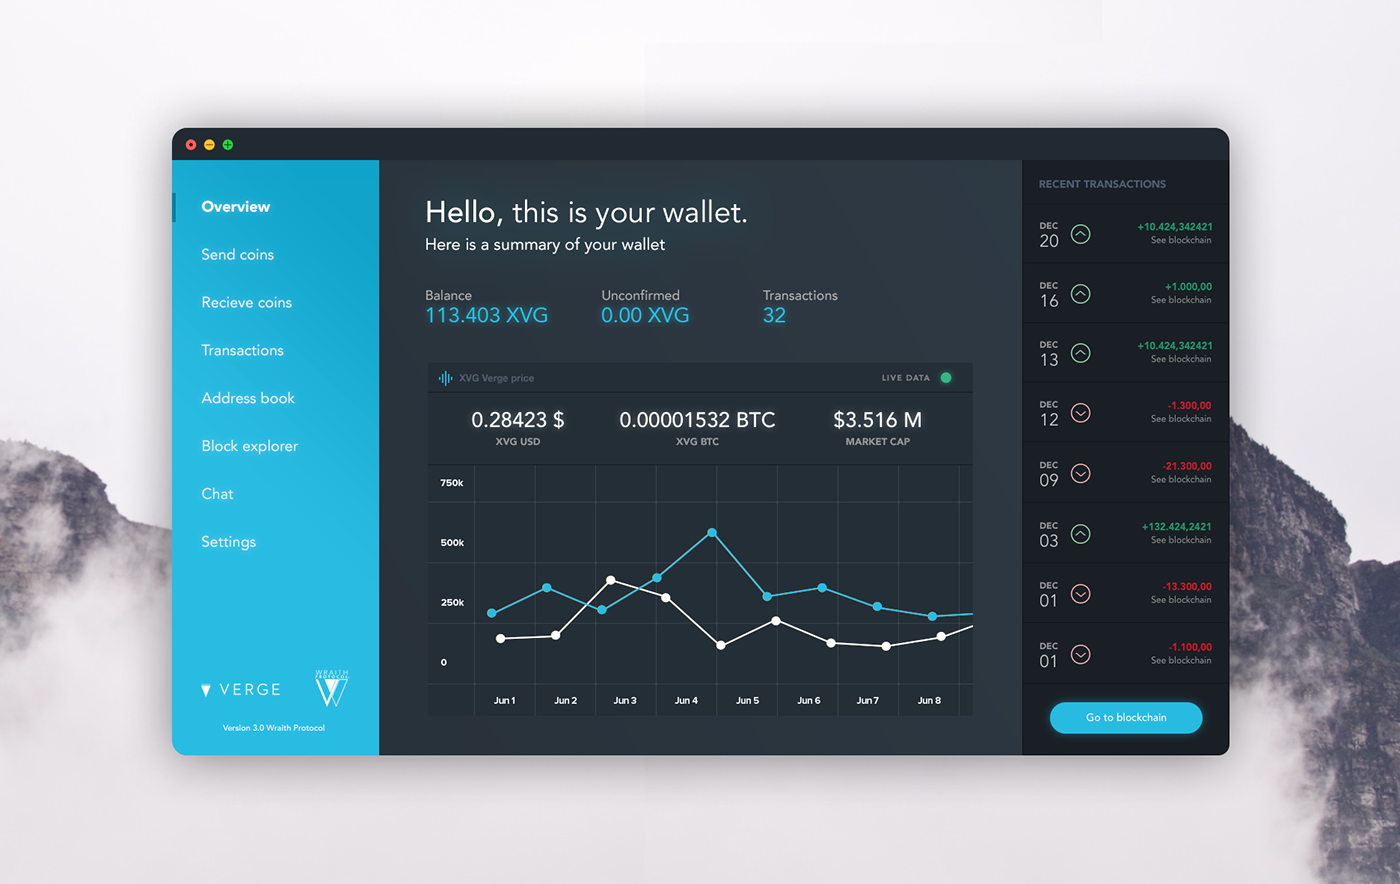 A Summary Of Your Wallet With Balance And Recent Transactions